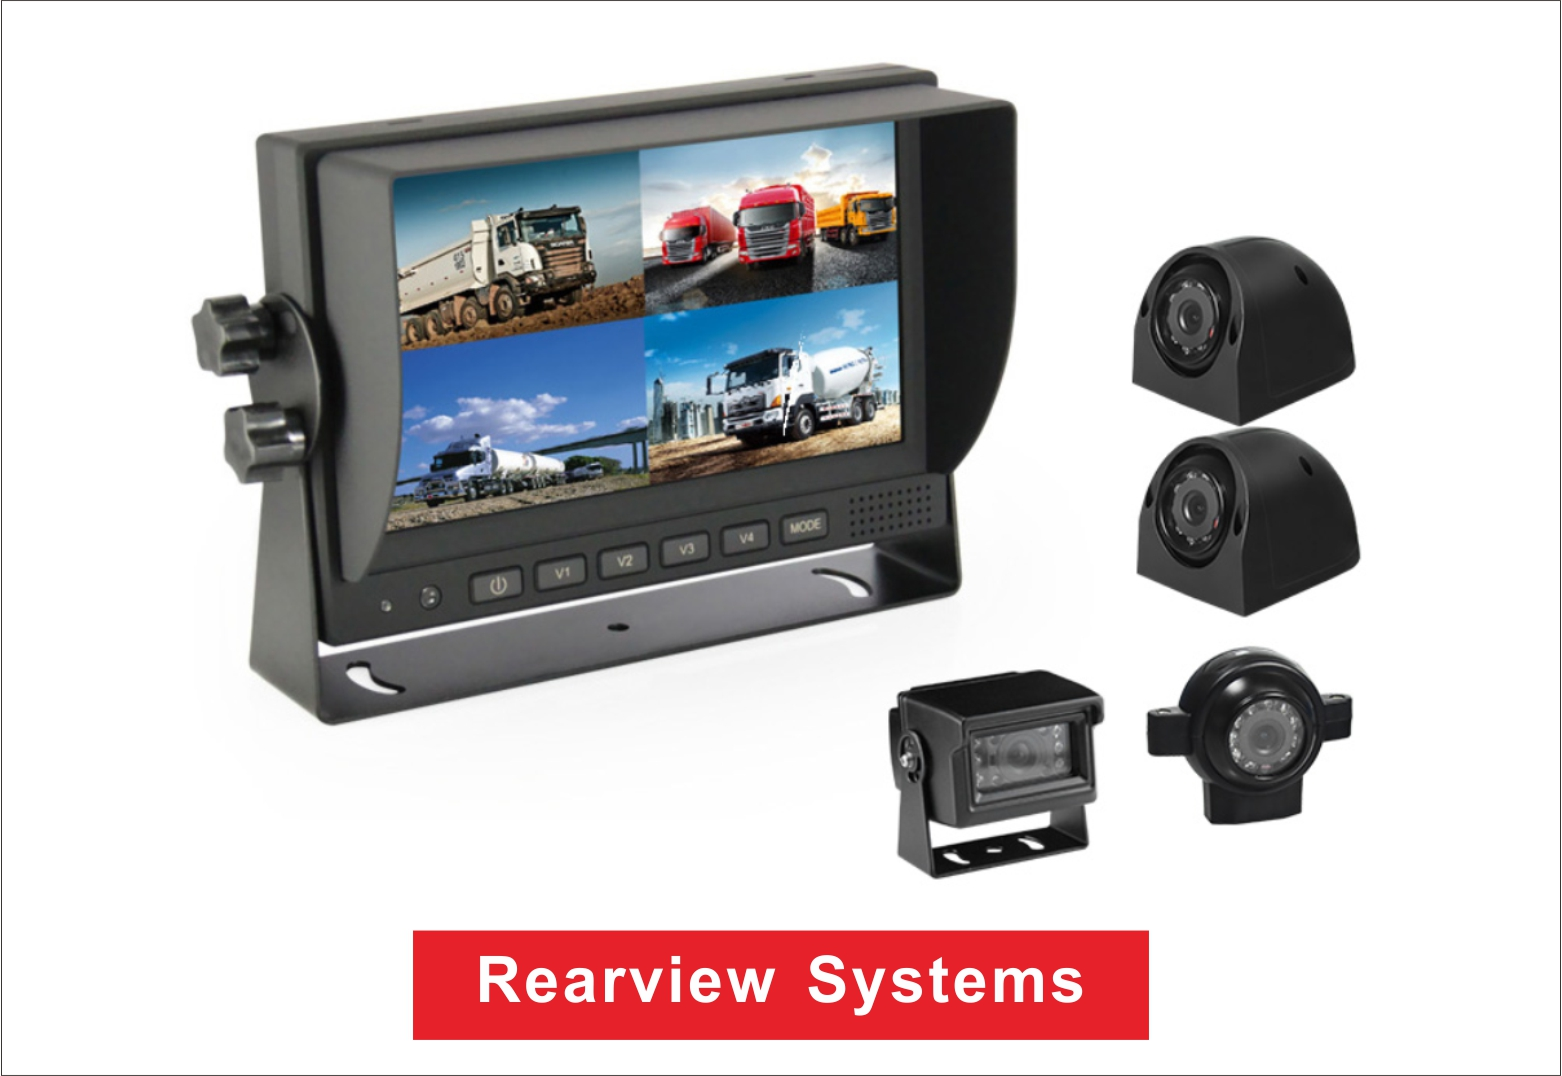 Rearview Systems